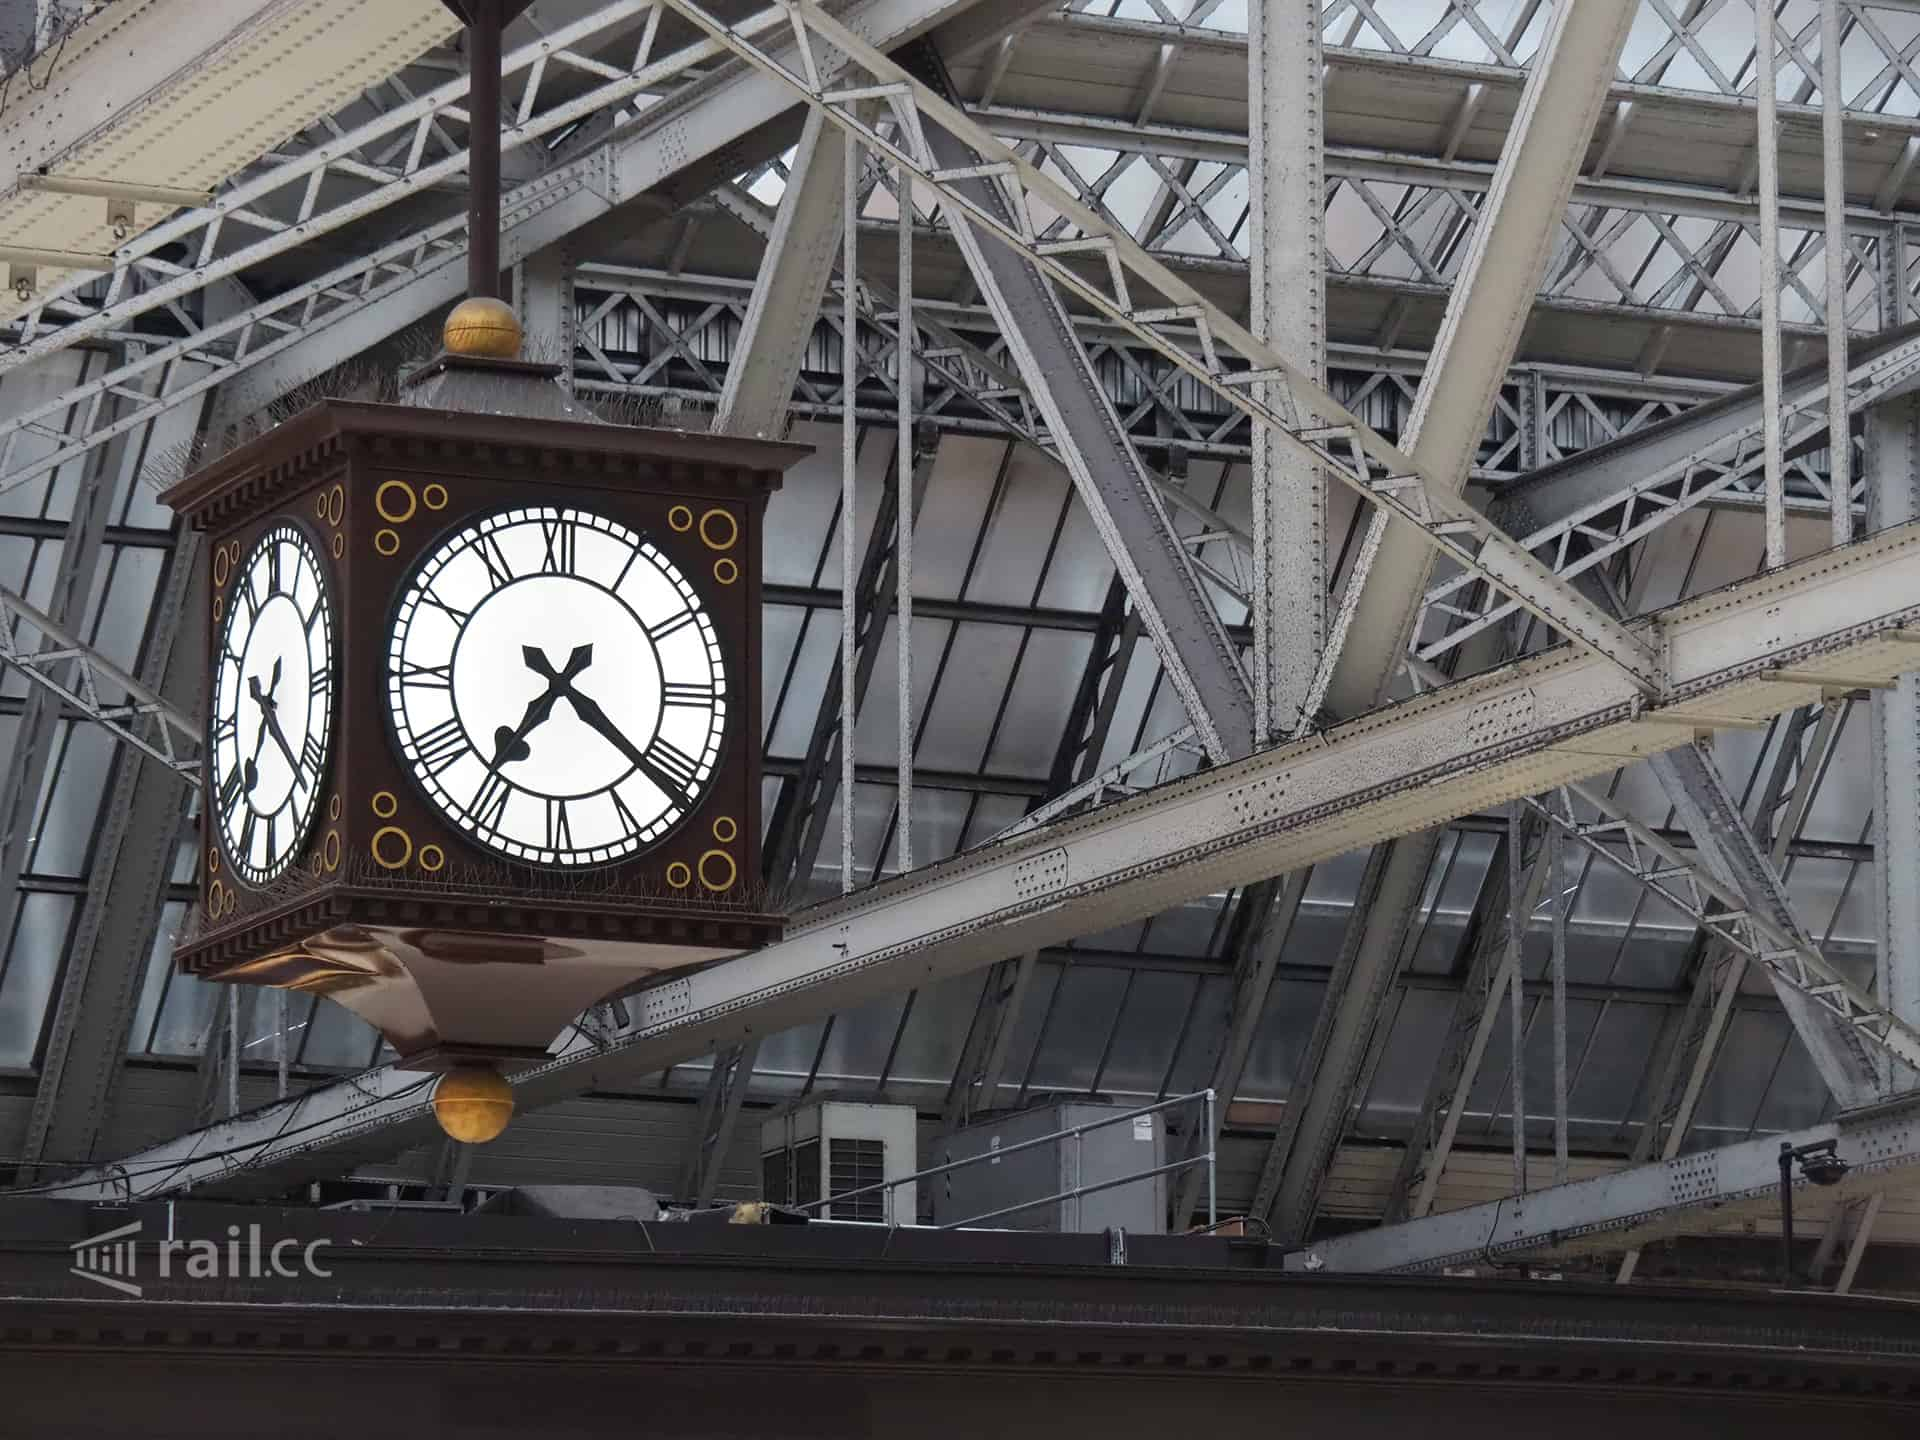 Clock at Glasgow railway station